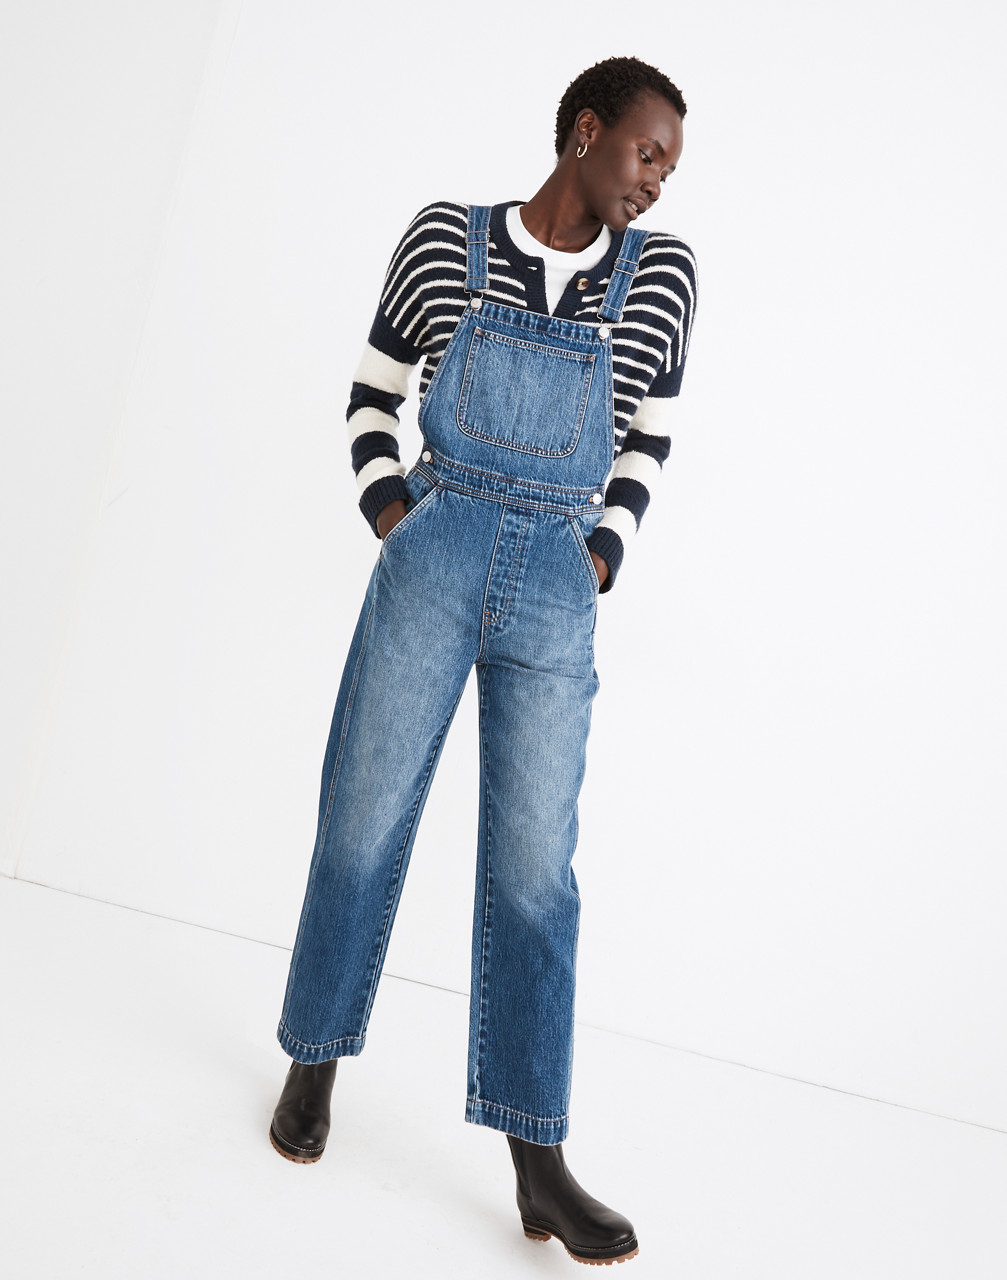 1980s Clothing, Fashion | 80s Style Clothes Relaxed Overalls in Irwell Wash $148.00 AT vintagedancer.com